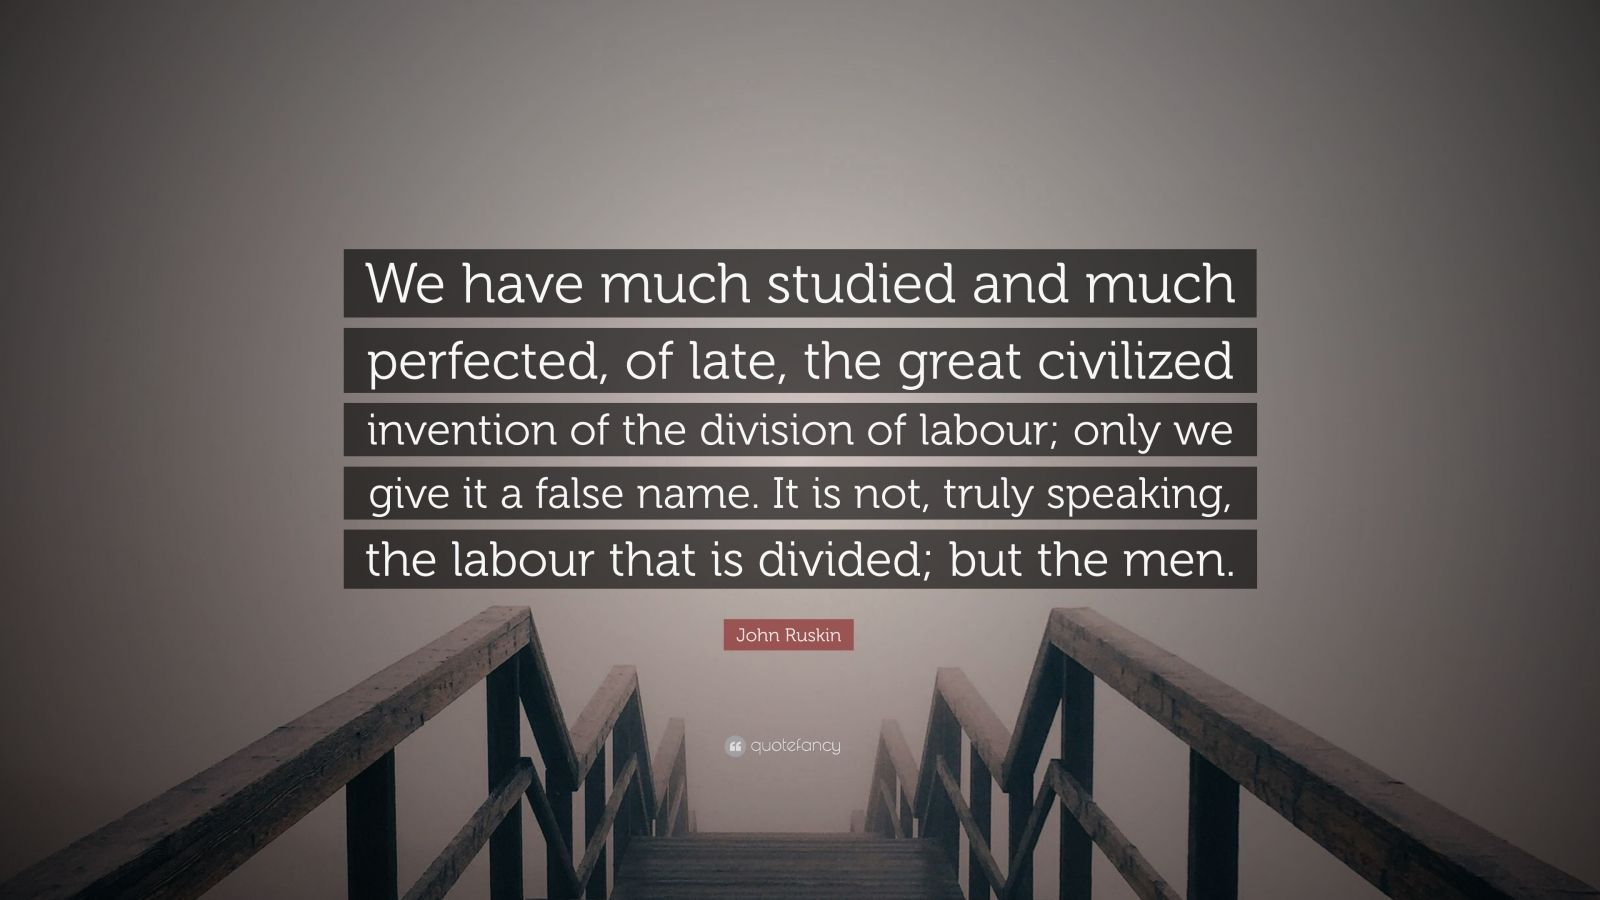 """John Ruskin Quote: """"We have much studied and much perfected, of late, the great civilized invention of the division of labour; only we give it a false name. It is not, truly speaking, the labour that is divided; but the men."""""""